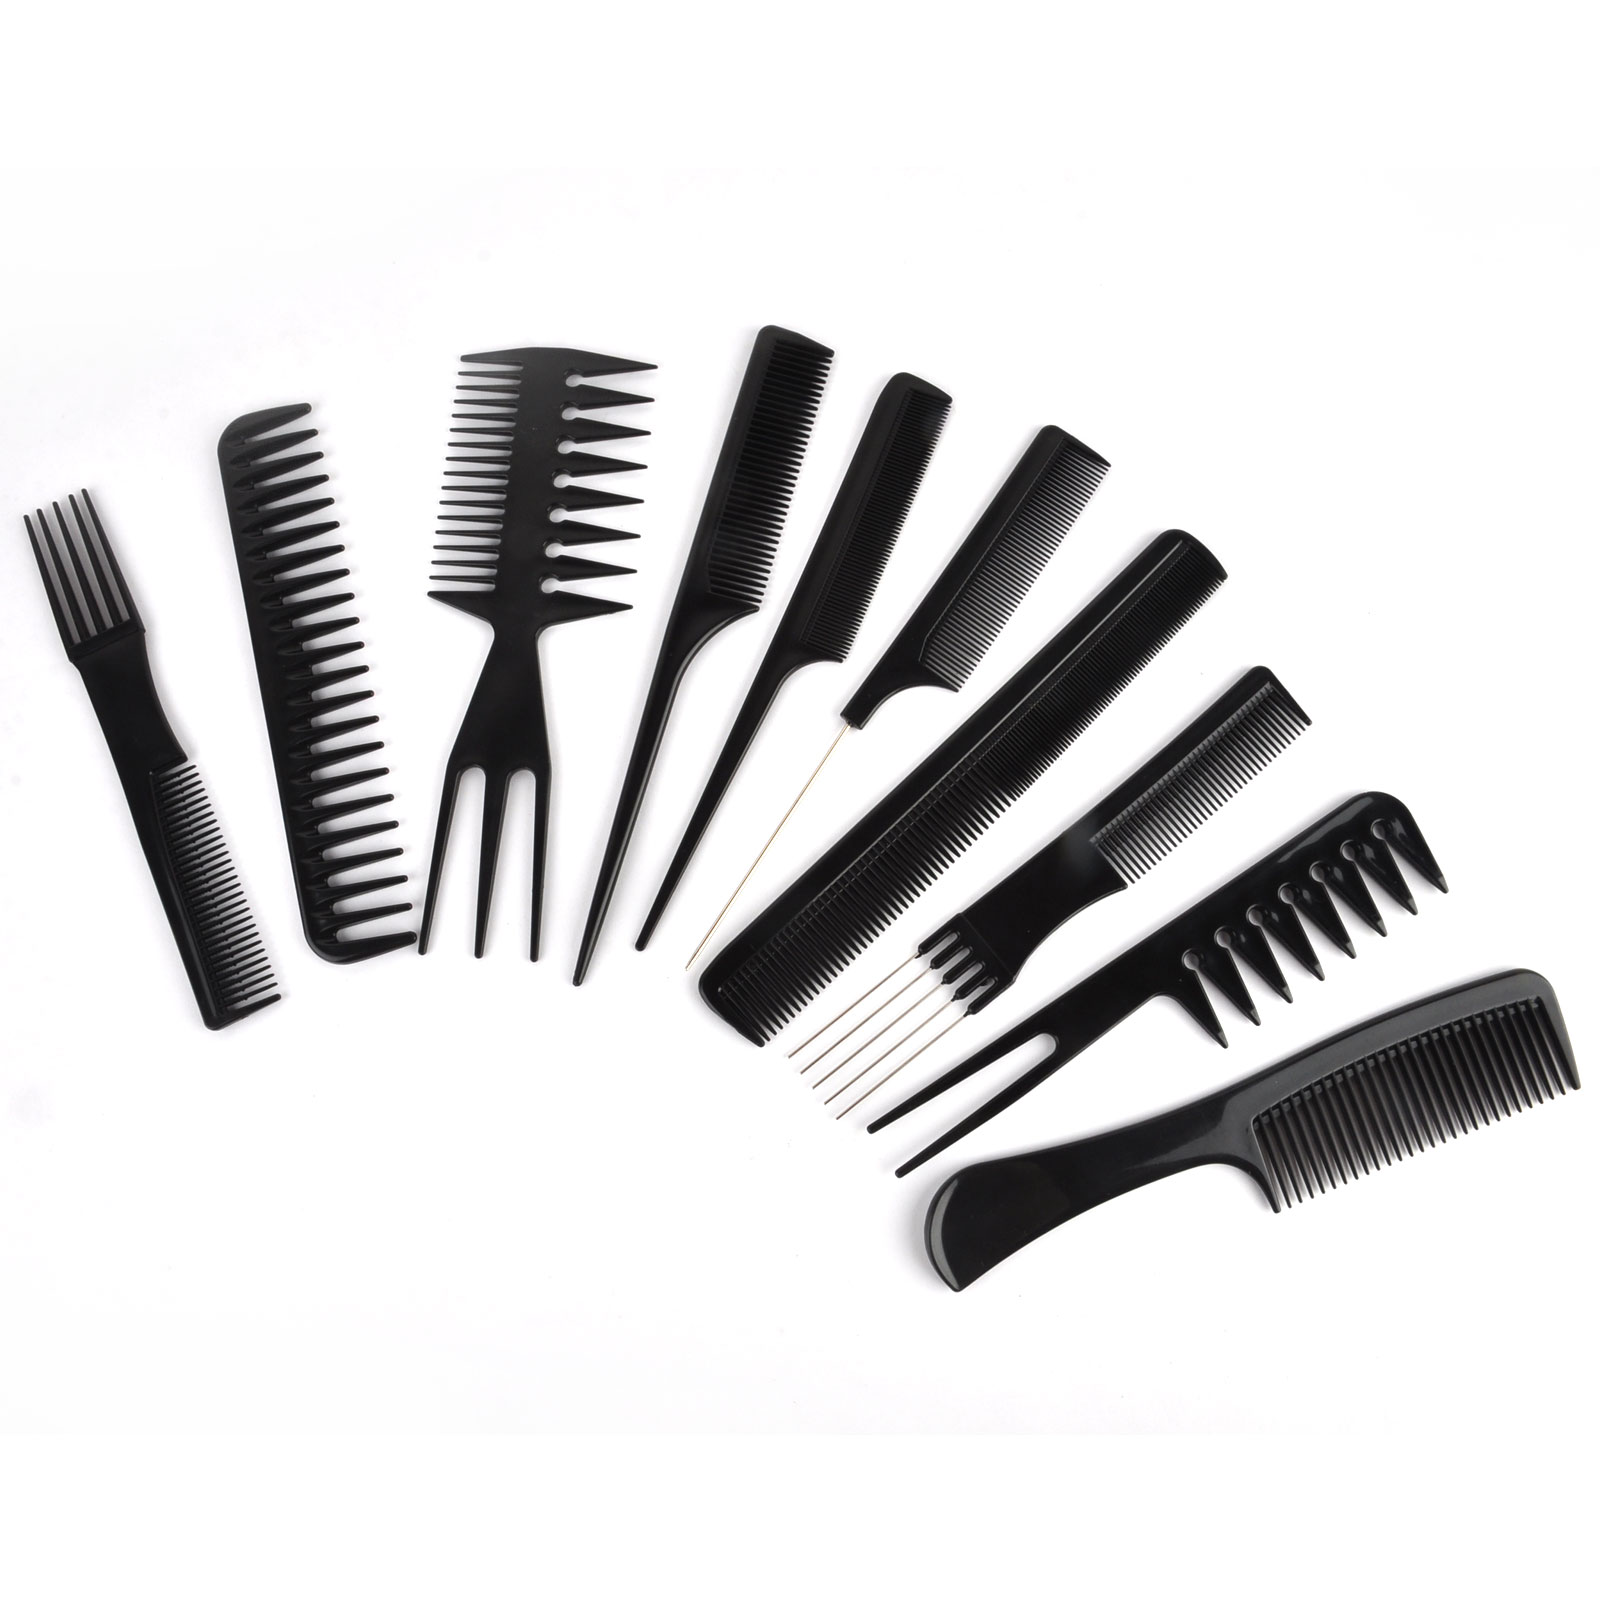 Mayitr 10in1 Professional Hairs Salon Combs Black Portable Stylist Hairdressing Comb Kit Set Barber Styling Tool